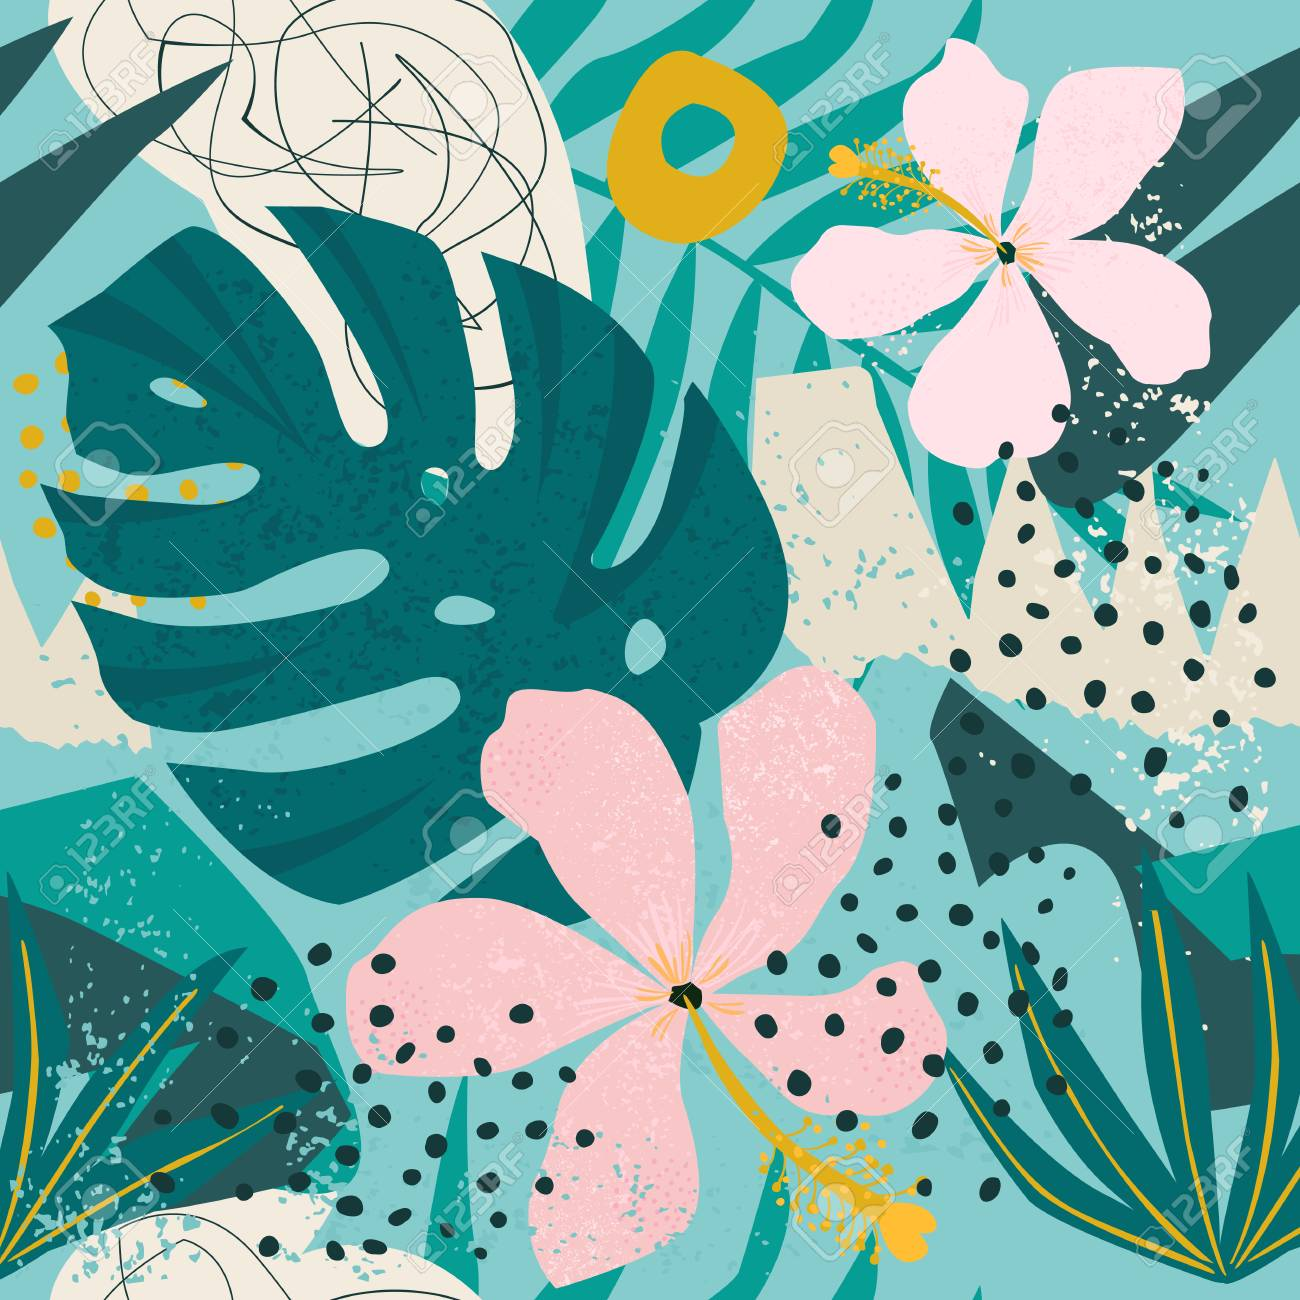 Tropical flowers and palm leaves on background. Seamless Vector pattern. - 125738326